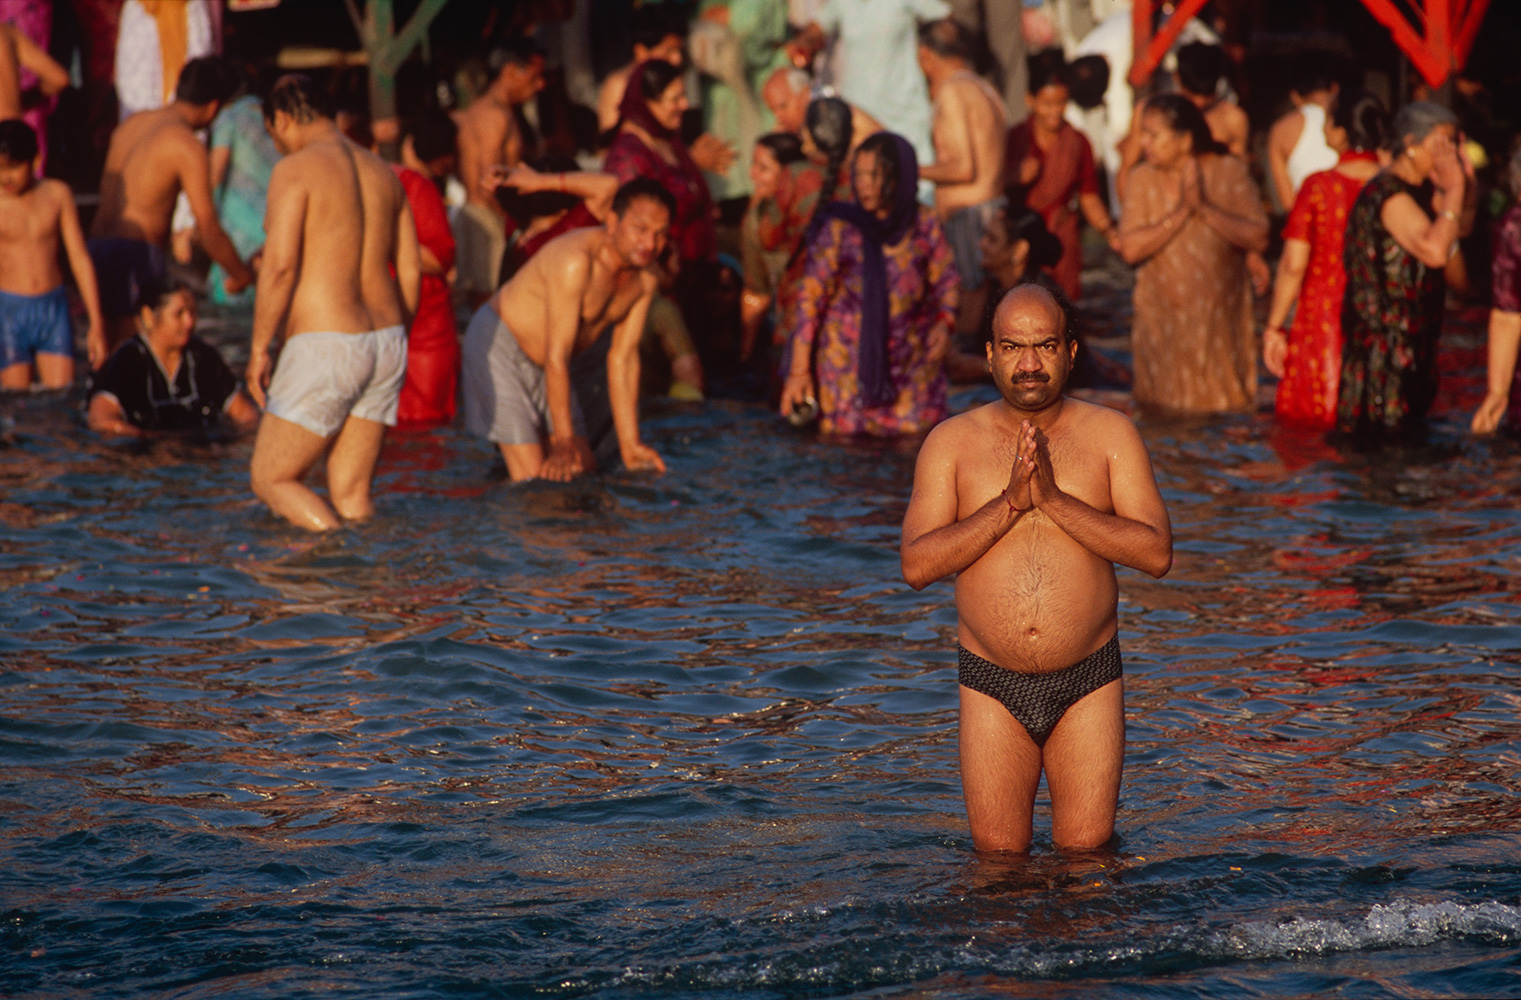 haridwar_bathing6_2004RVP